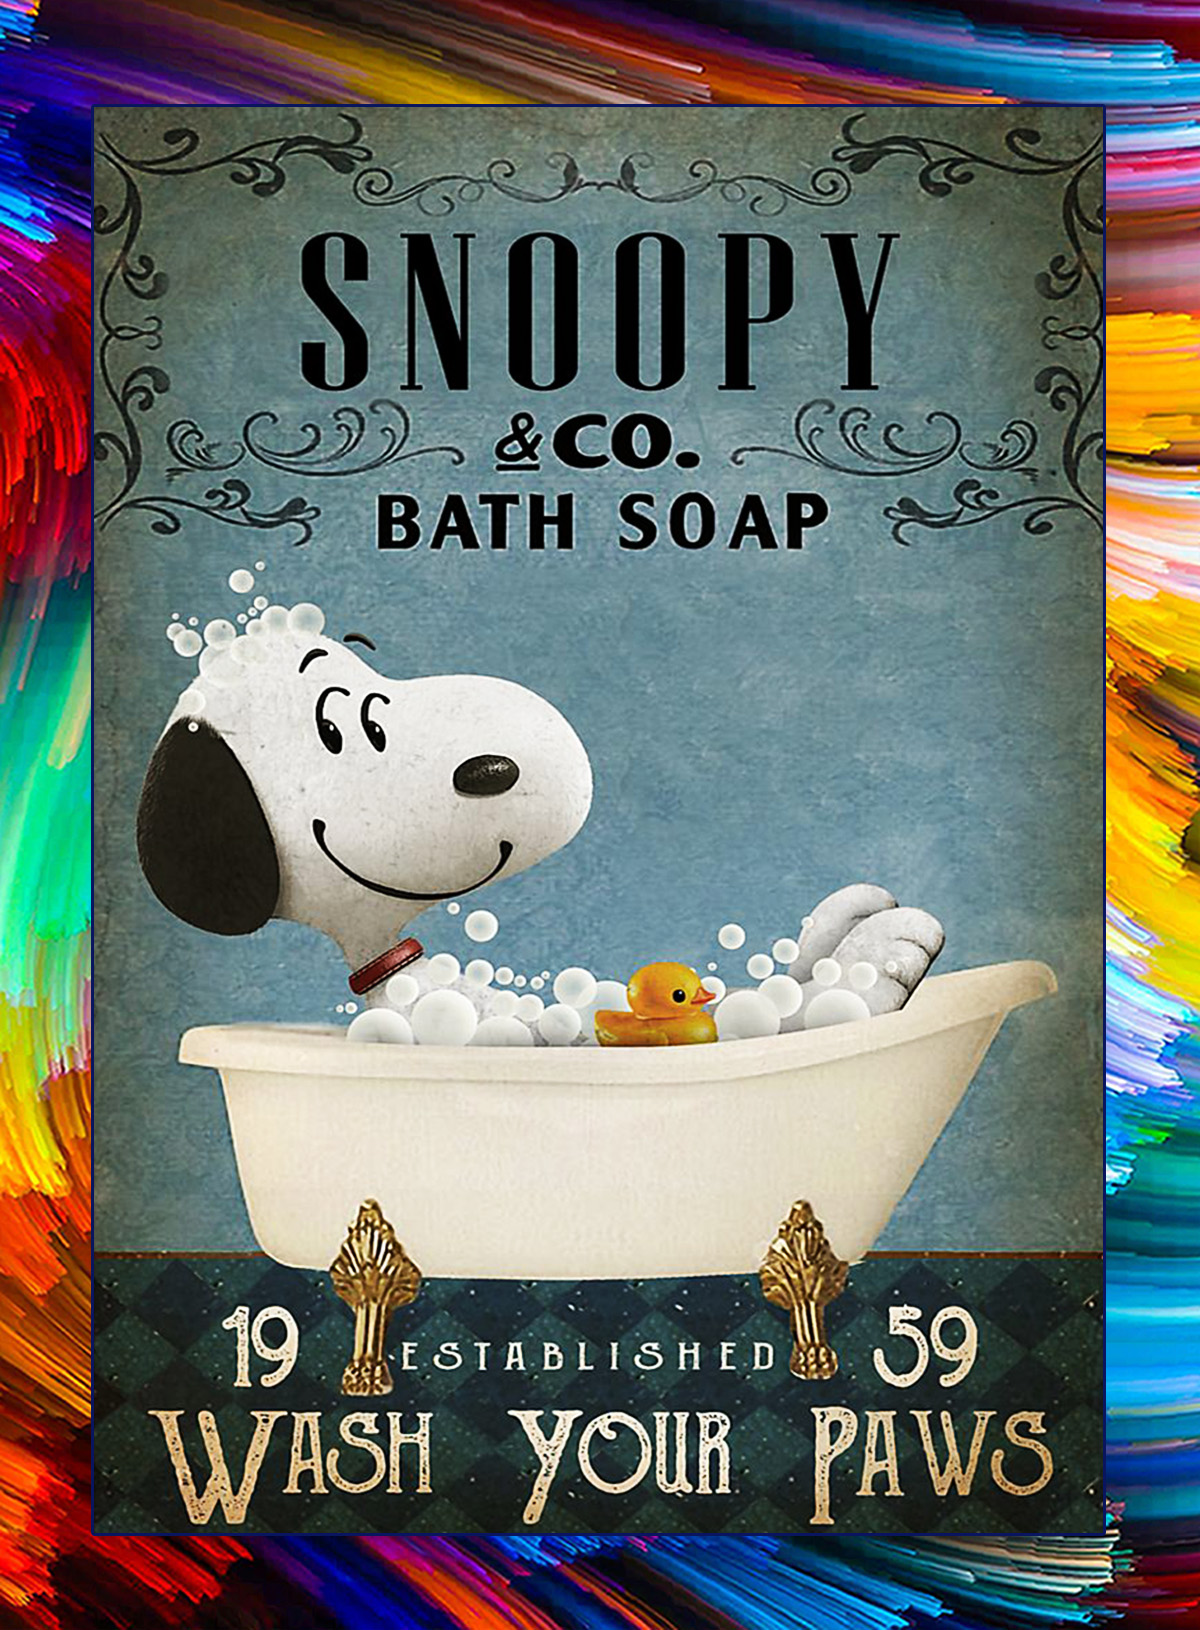 Snoopy co bath soap wash your paws poster - A4